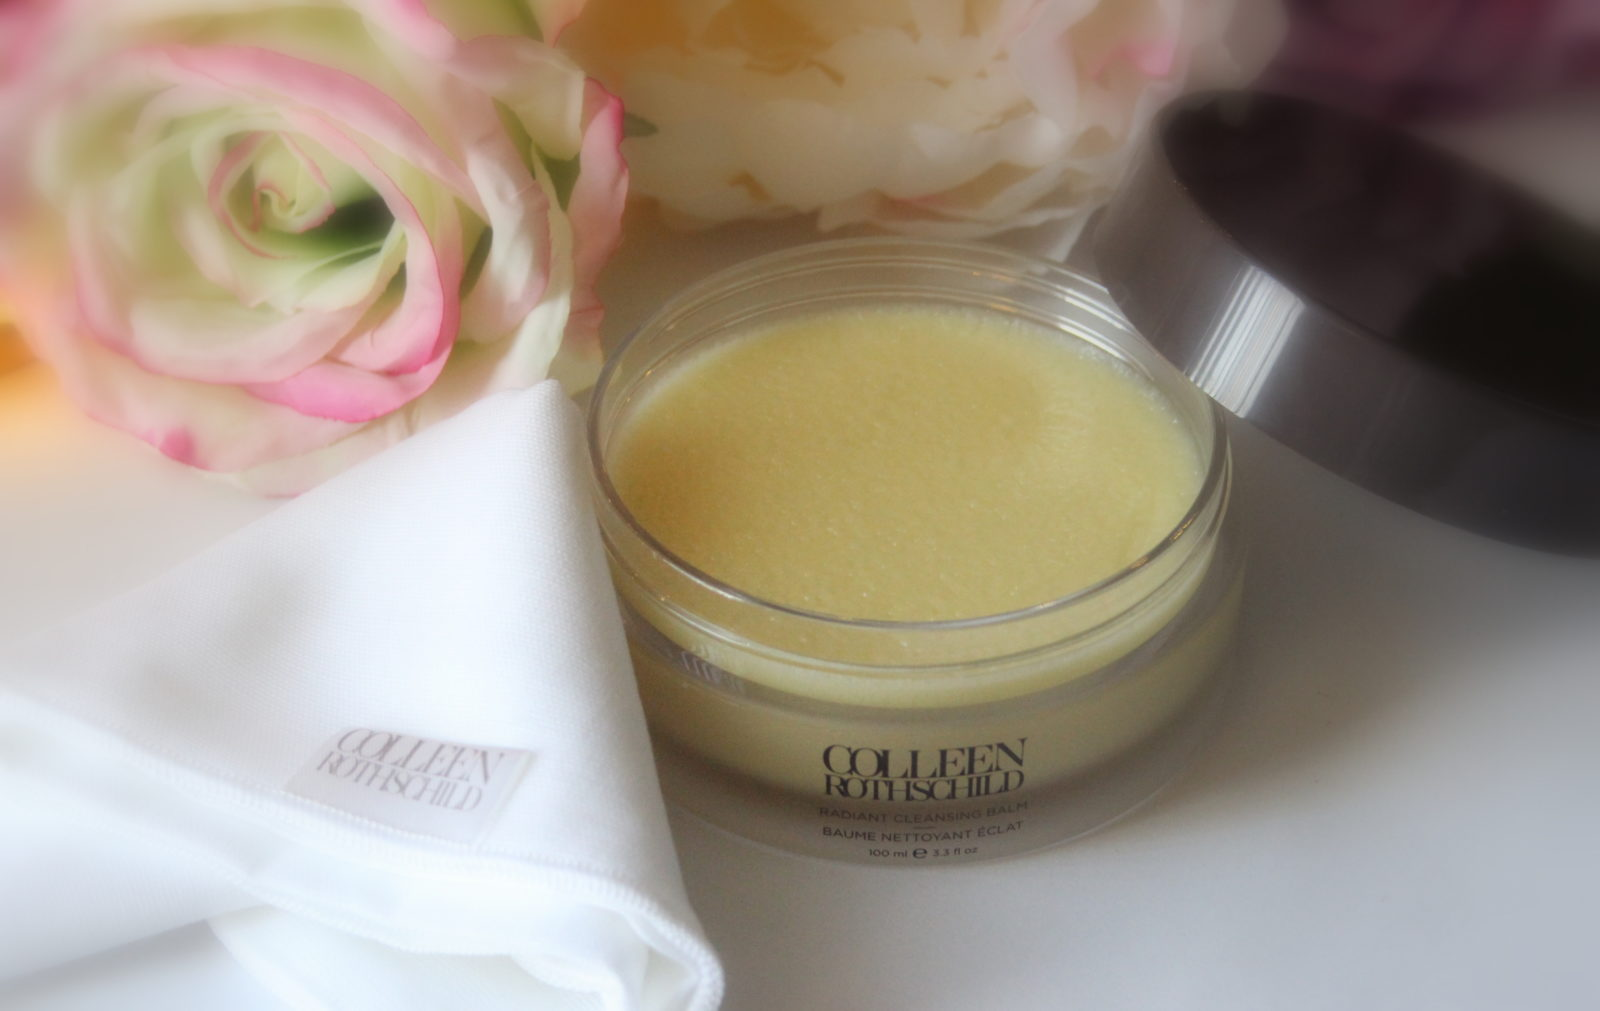 Colleen Rothschild Cleansing Balm Review